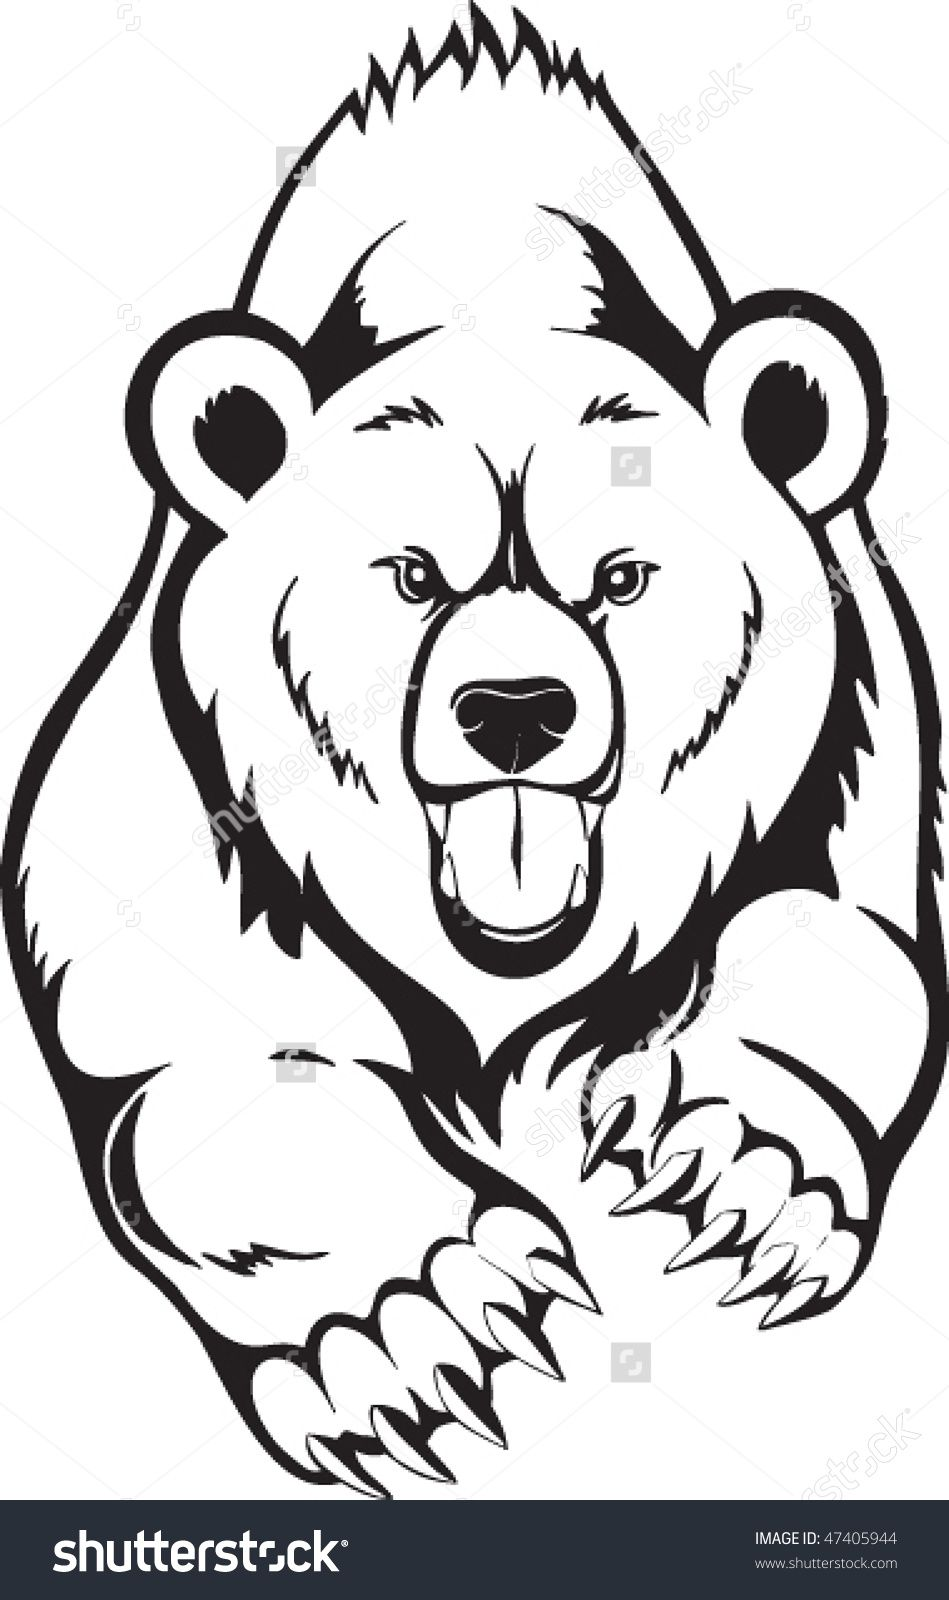 Animal Outlines To Print Wild Animal Coloring Page Kodiak Bear Up Coloring Page Animal Coloring Pages Bear Coloring Pages Animal Outline